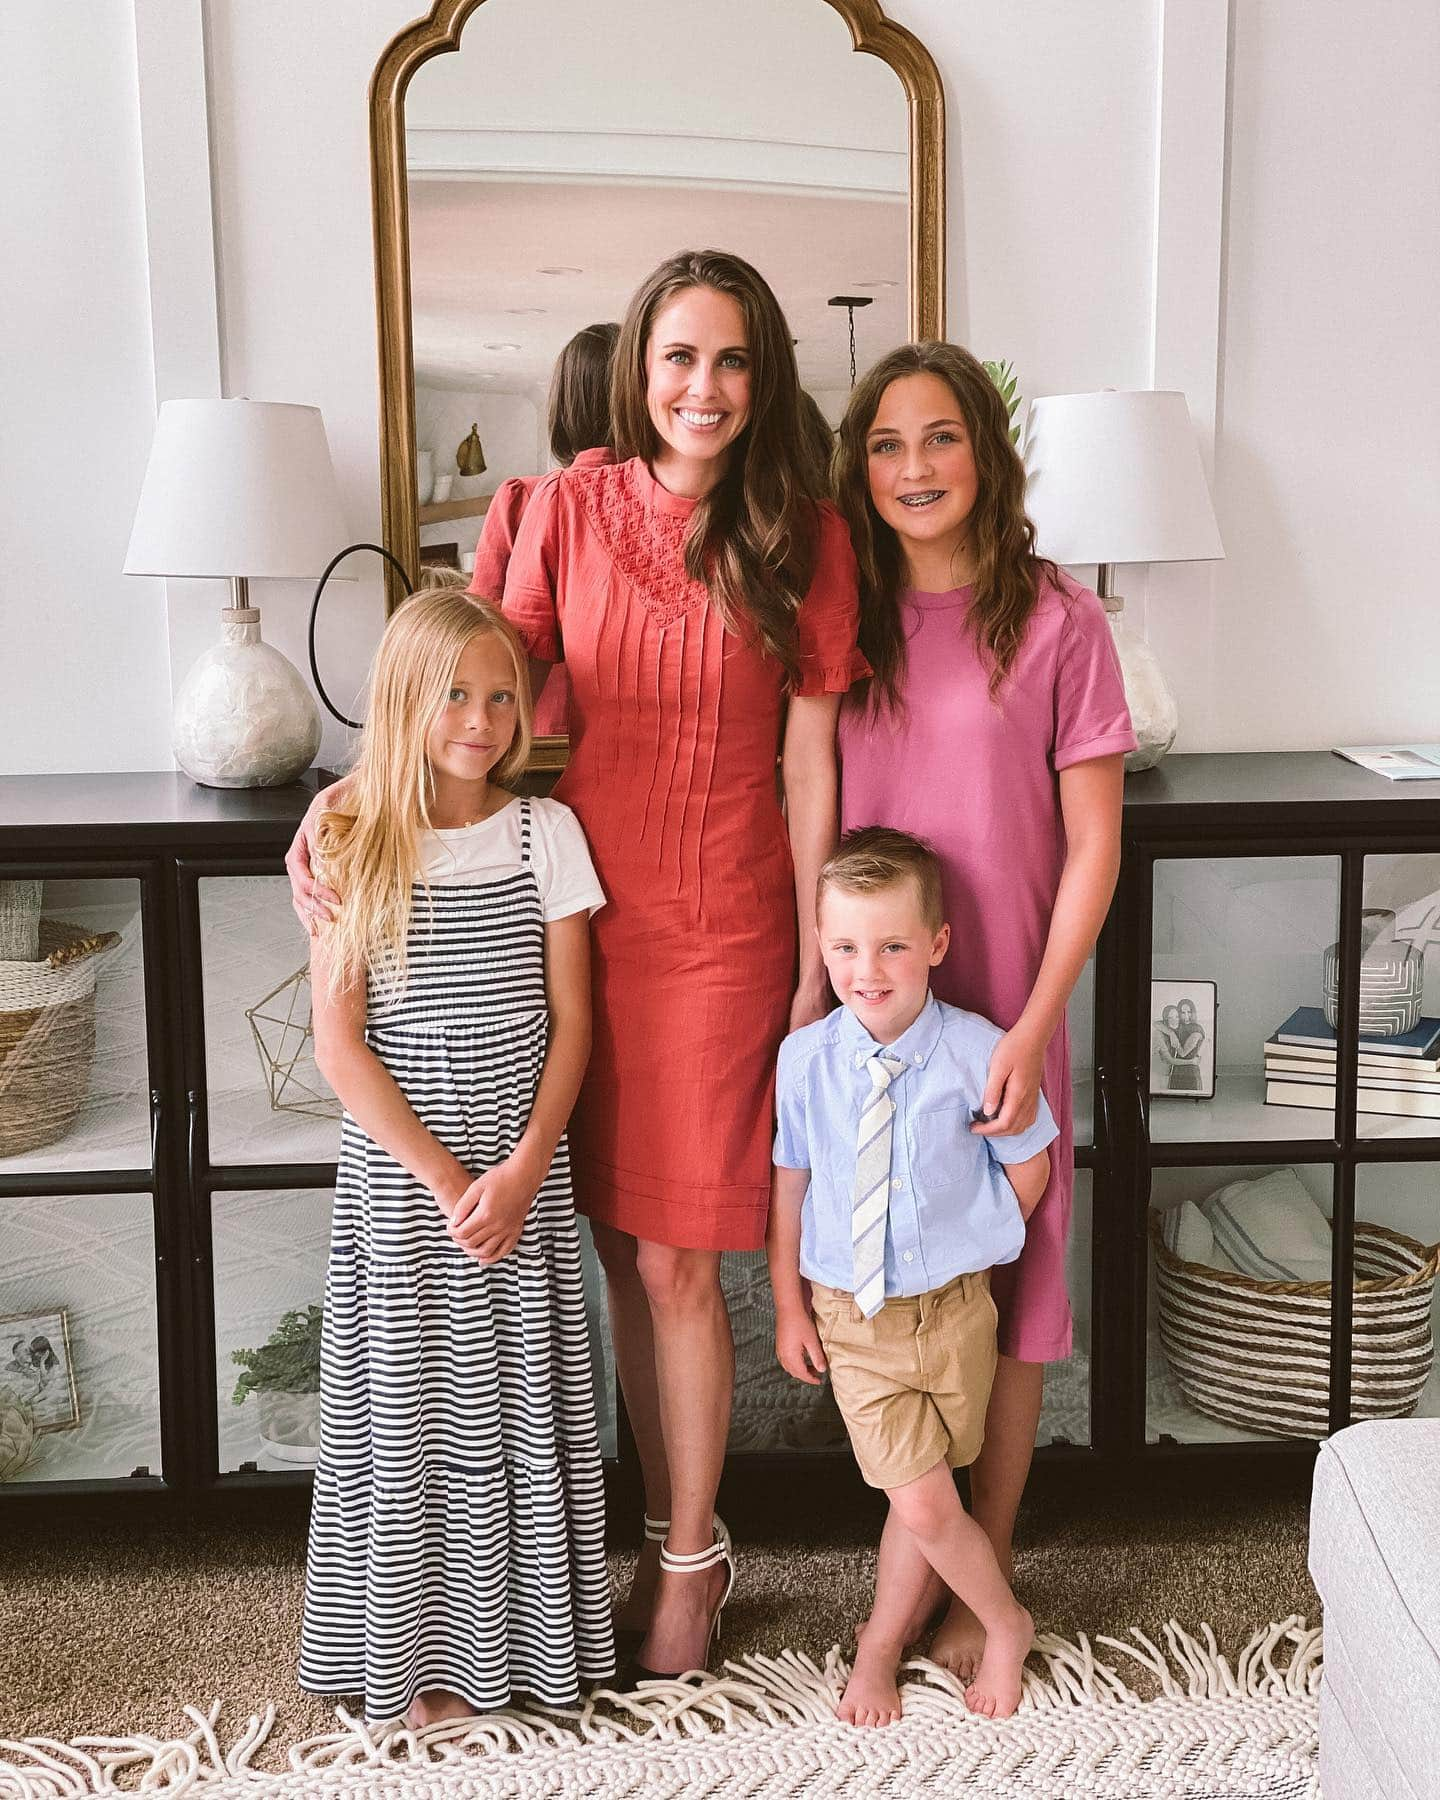 A photo of a mom with her three kids all in Sunday dress.